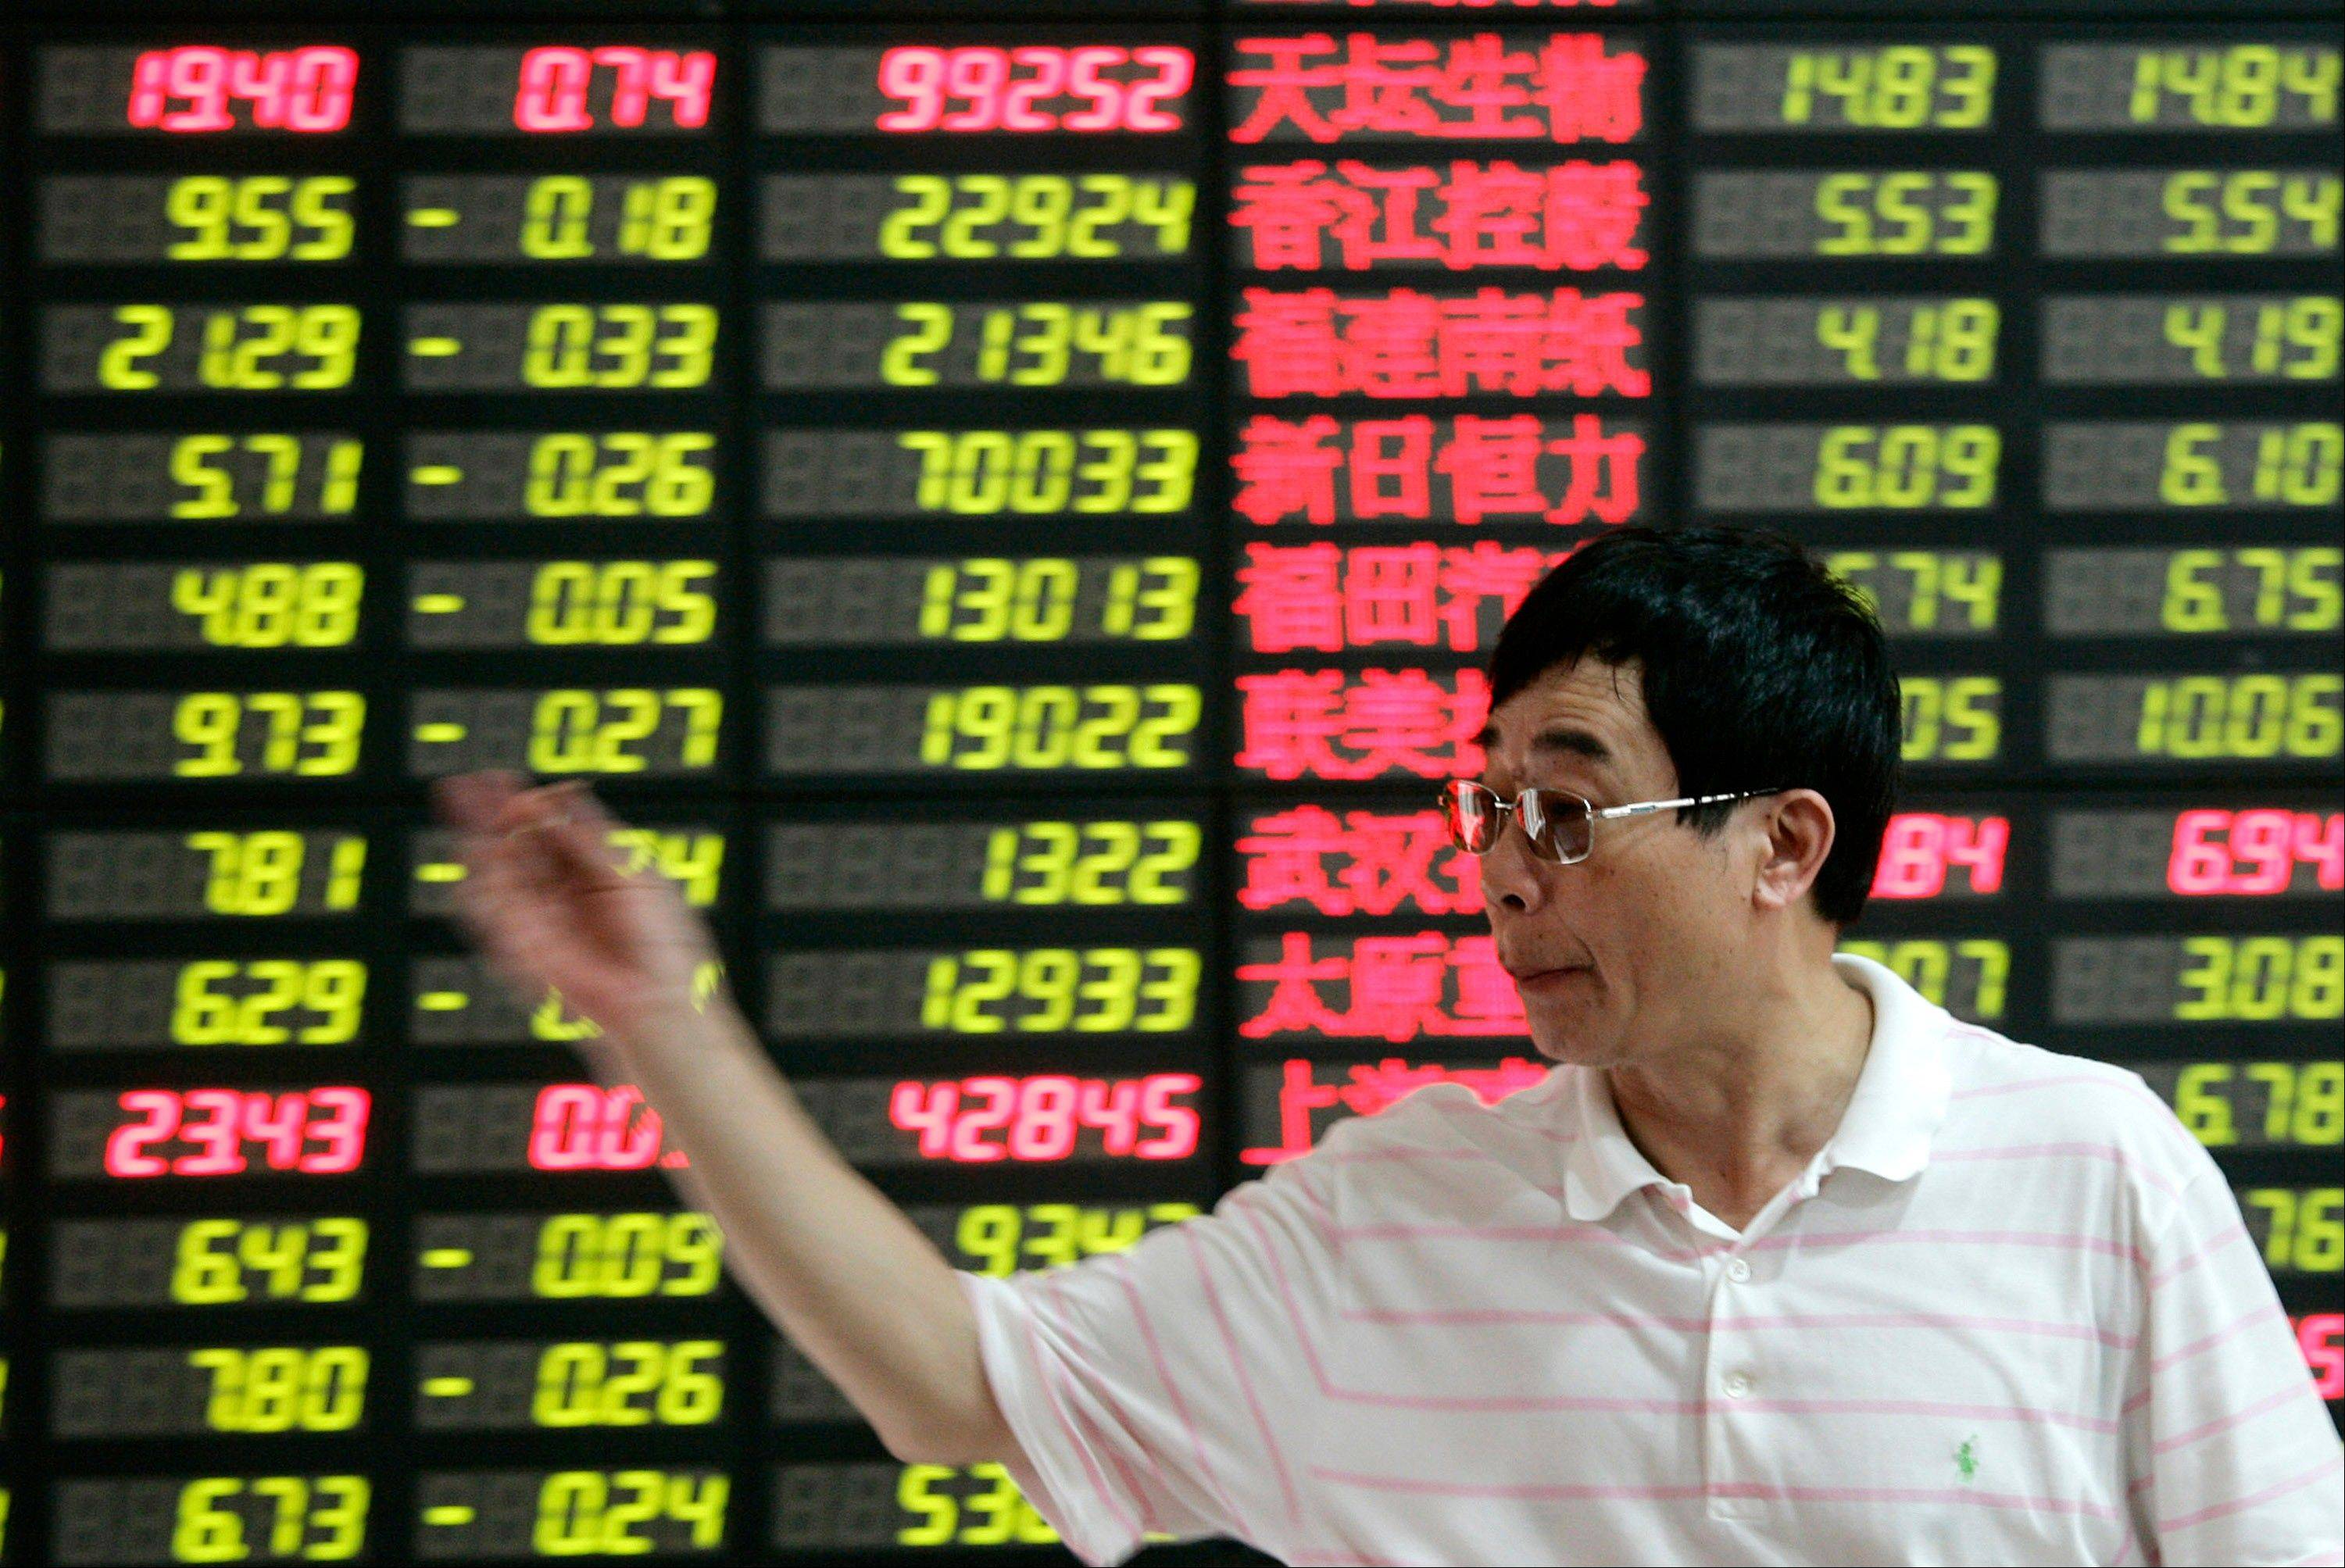 An investor gestures in front of the stock price monitor at a private securities company Monday .